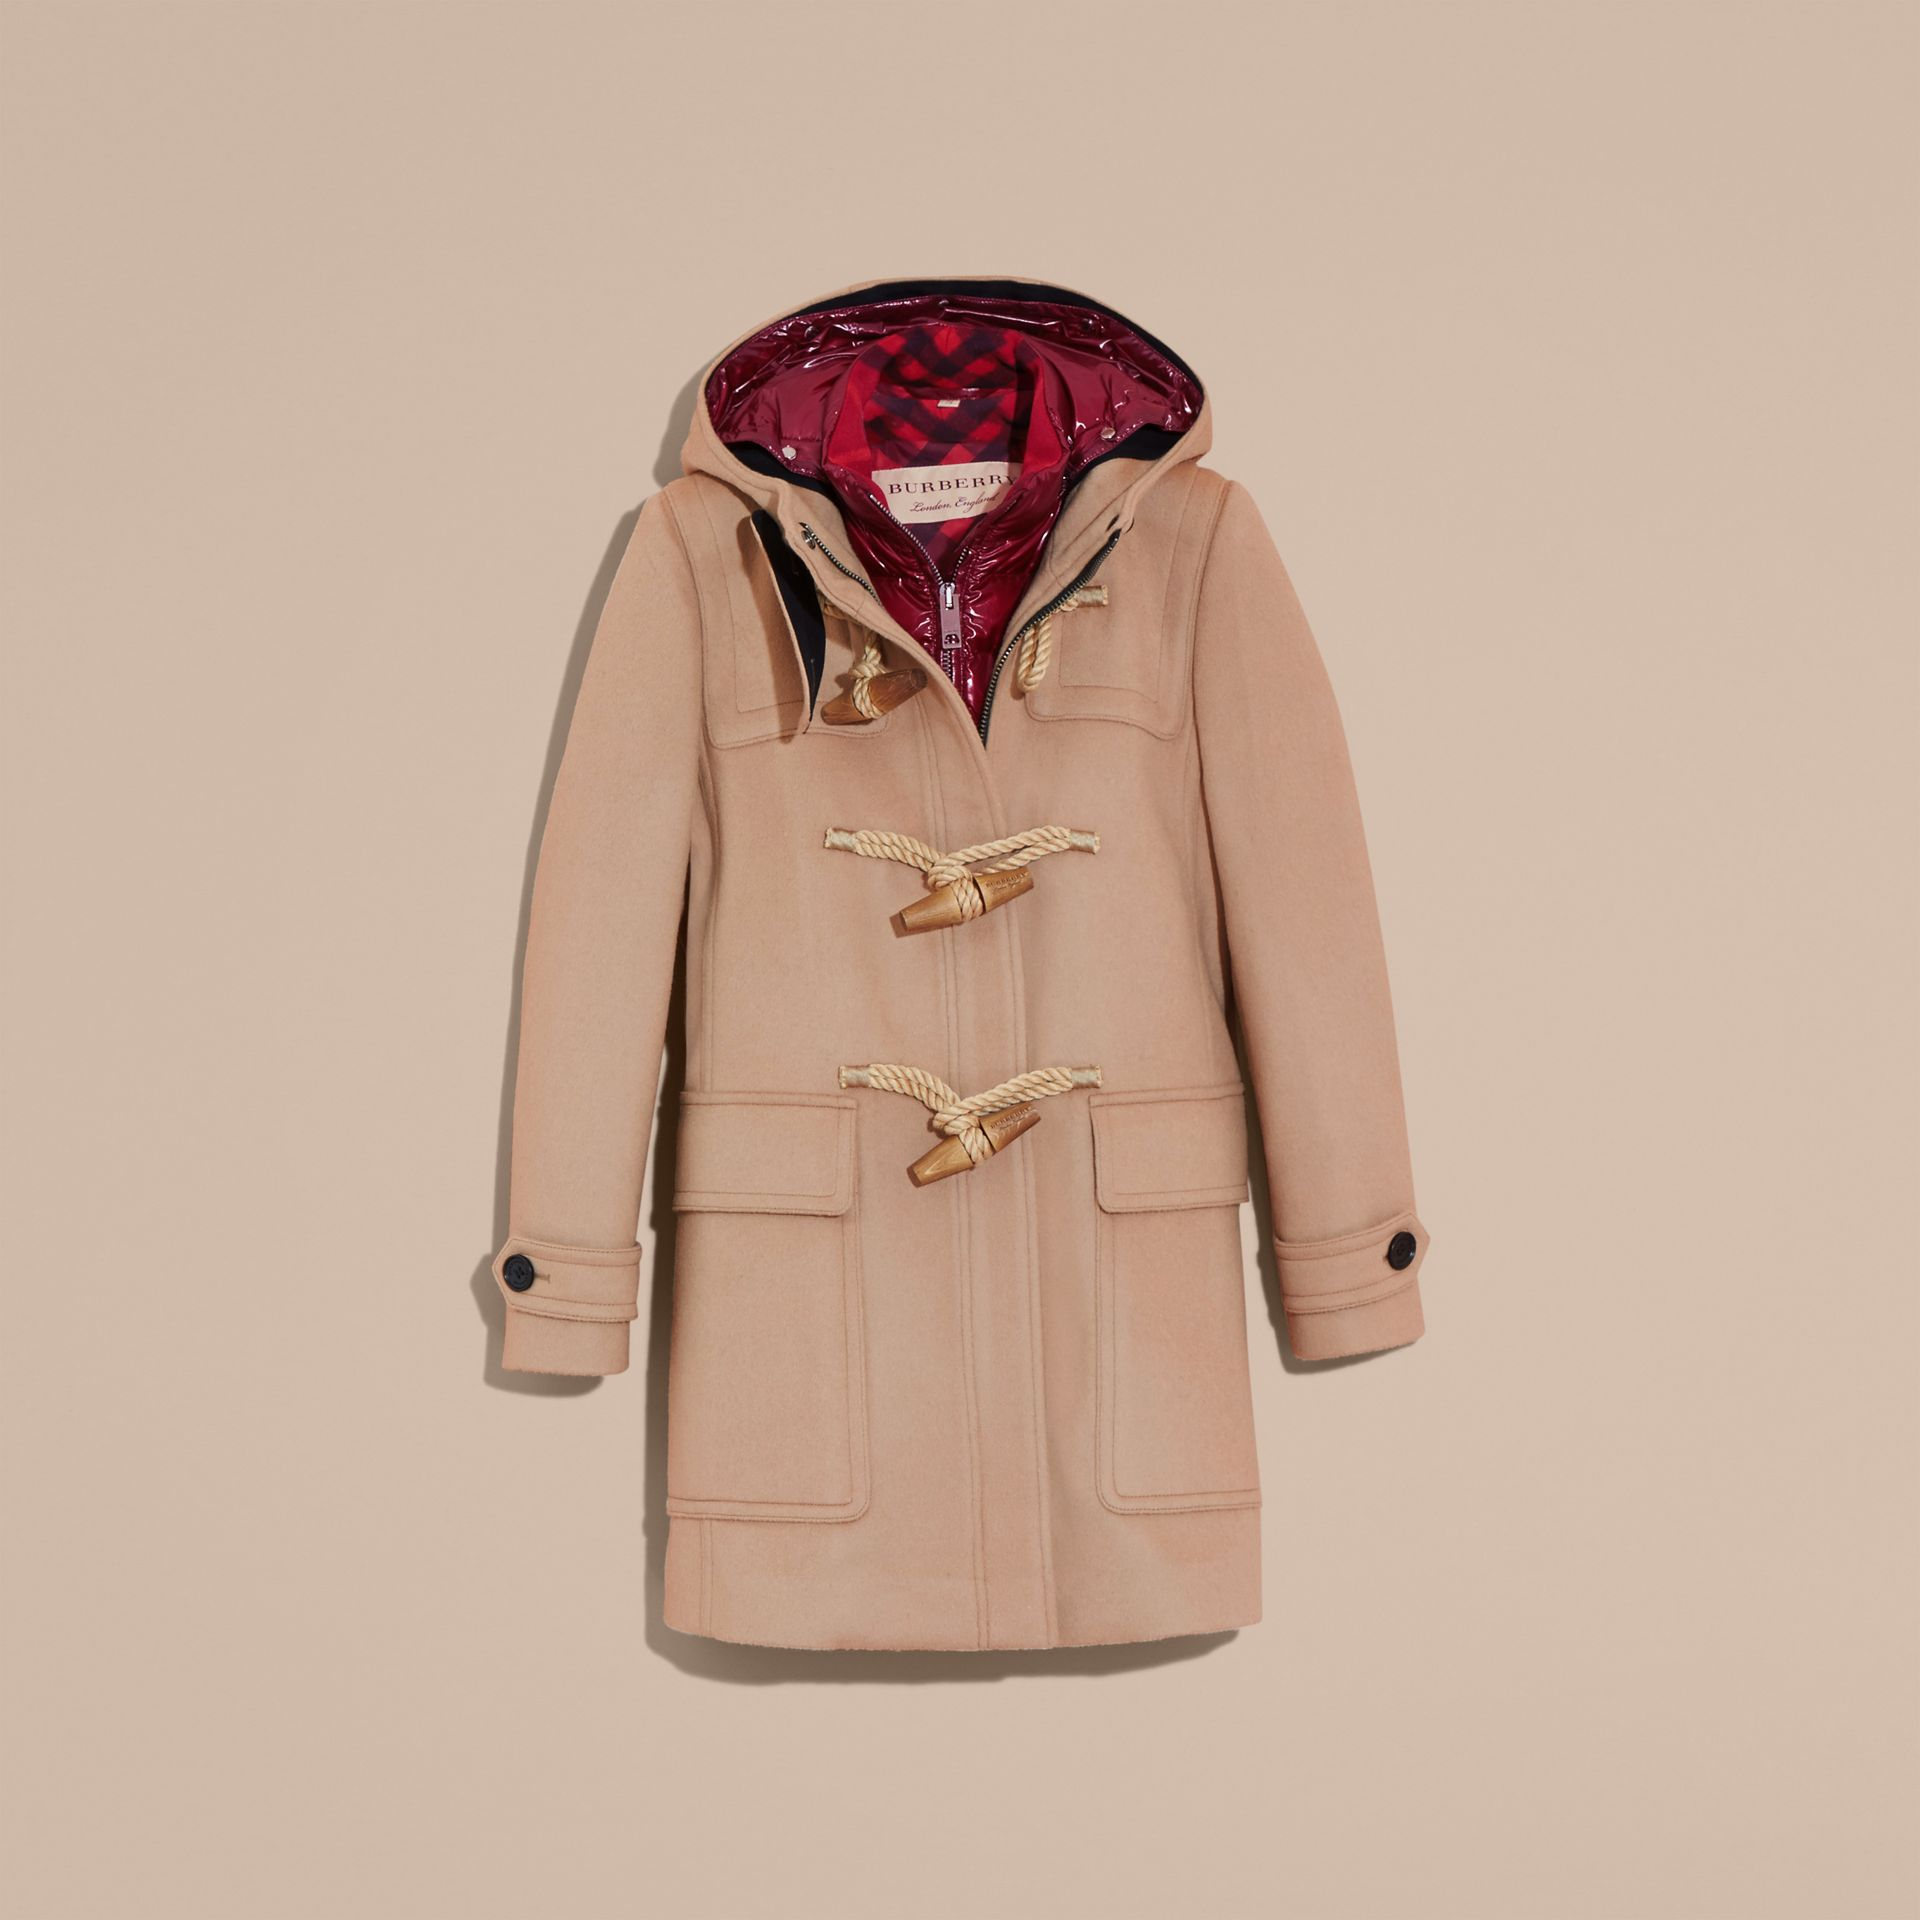 Camel Wool Duffle Coat with Detachable Hooded Down-filled Warmer Camel - gallery image 4